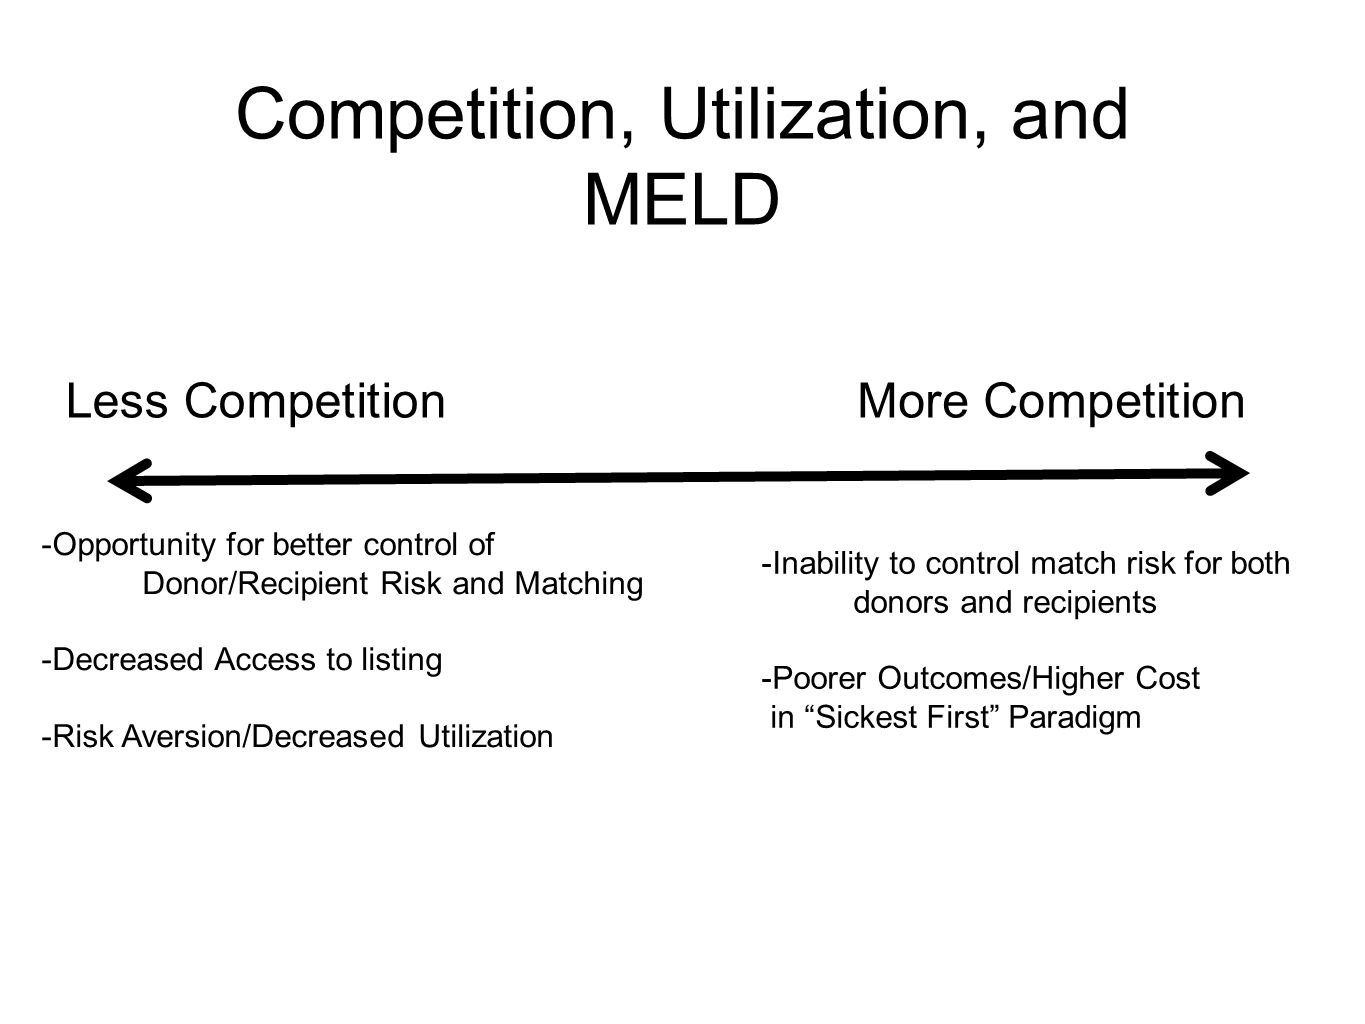 Competition, Utilization, and MELD Less CompetitionMore Competition -Opportunity for better control of Donor/Recipient Risk and Matching -Decreased Access to listing -Risk Aversion/Decreased Utilization -Inability to control match risk for both donors and recipients -Poorer Outcomes/Higher Cost in Sickest First Paradigm